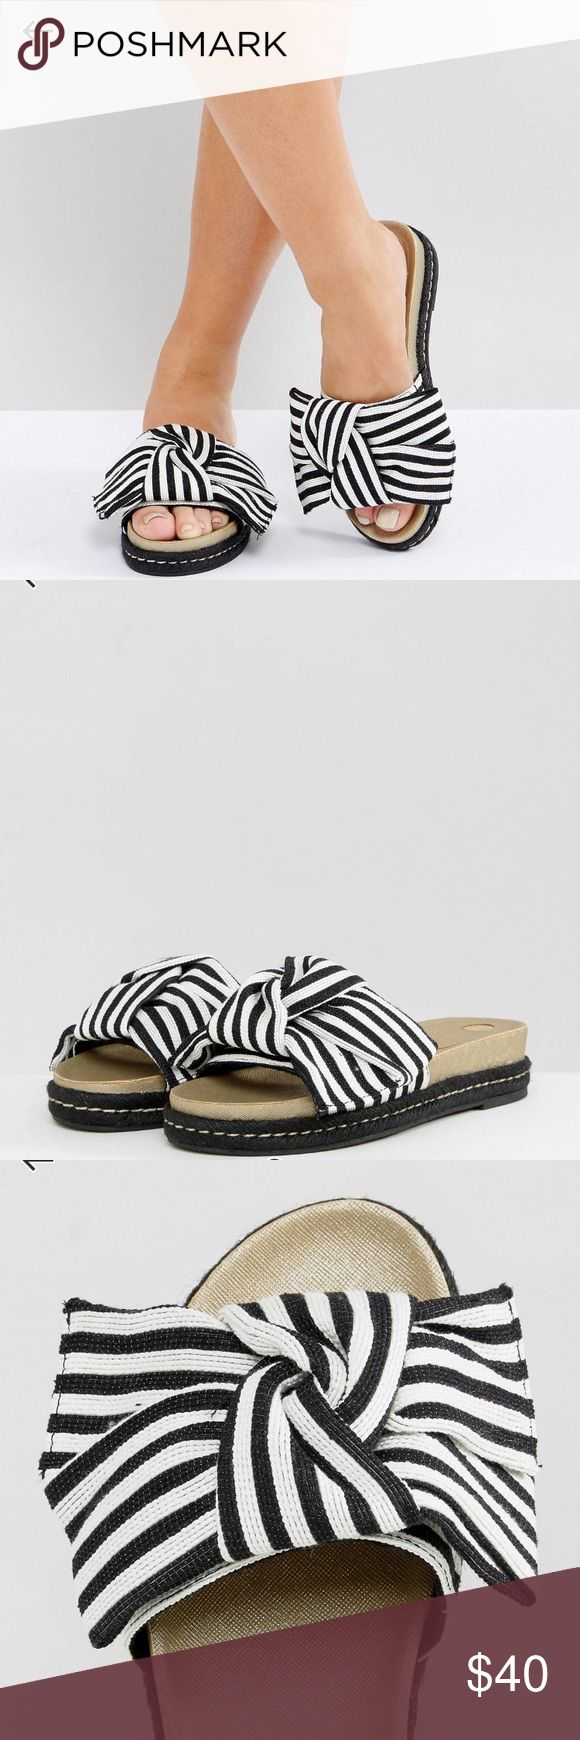 River Island Stripe Double Bow Slides Worn only once! Sandals by River Island Textile upper Striped design Slip-on style Bow detailing Contrast stitching Textured sole Do not wash 100% Textile Upper PRODUCT CODE 1141786 River Island Shoes Sandals